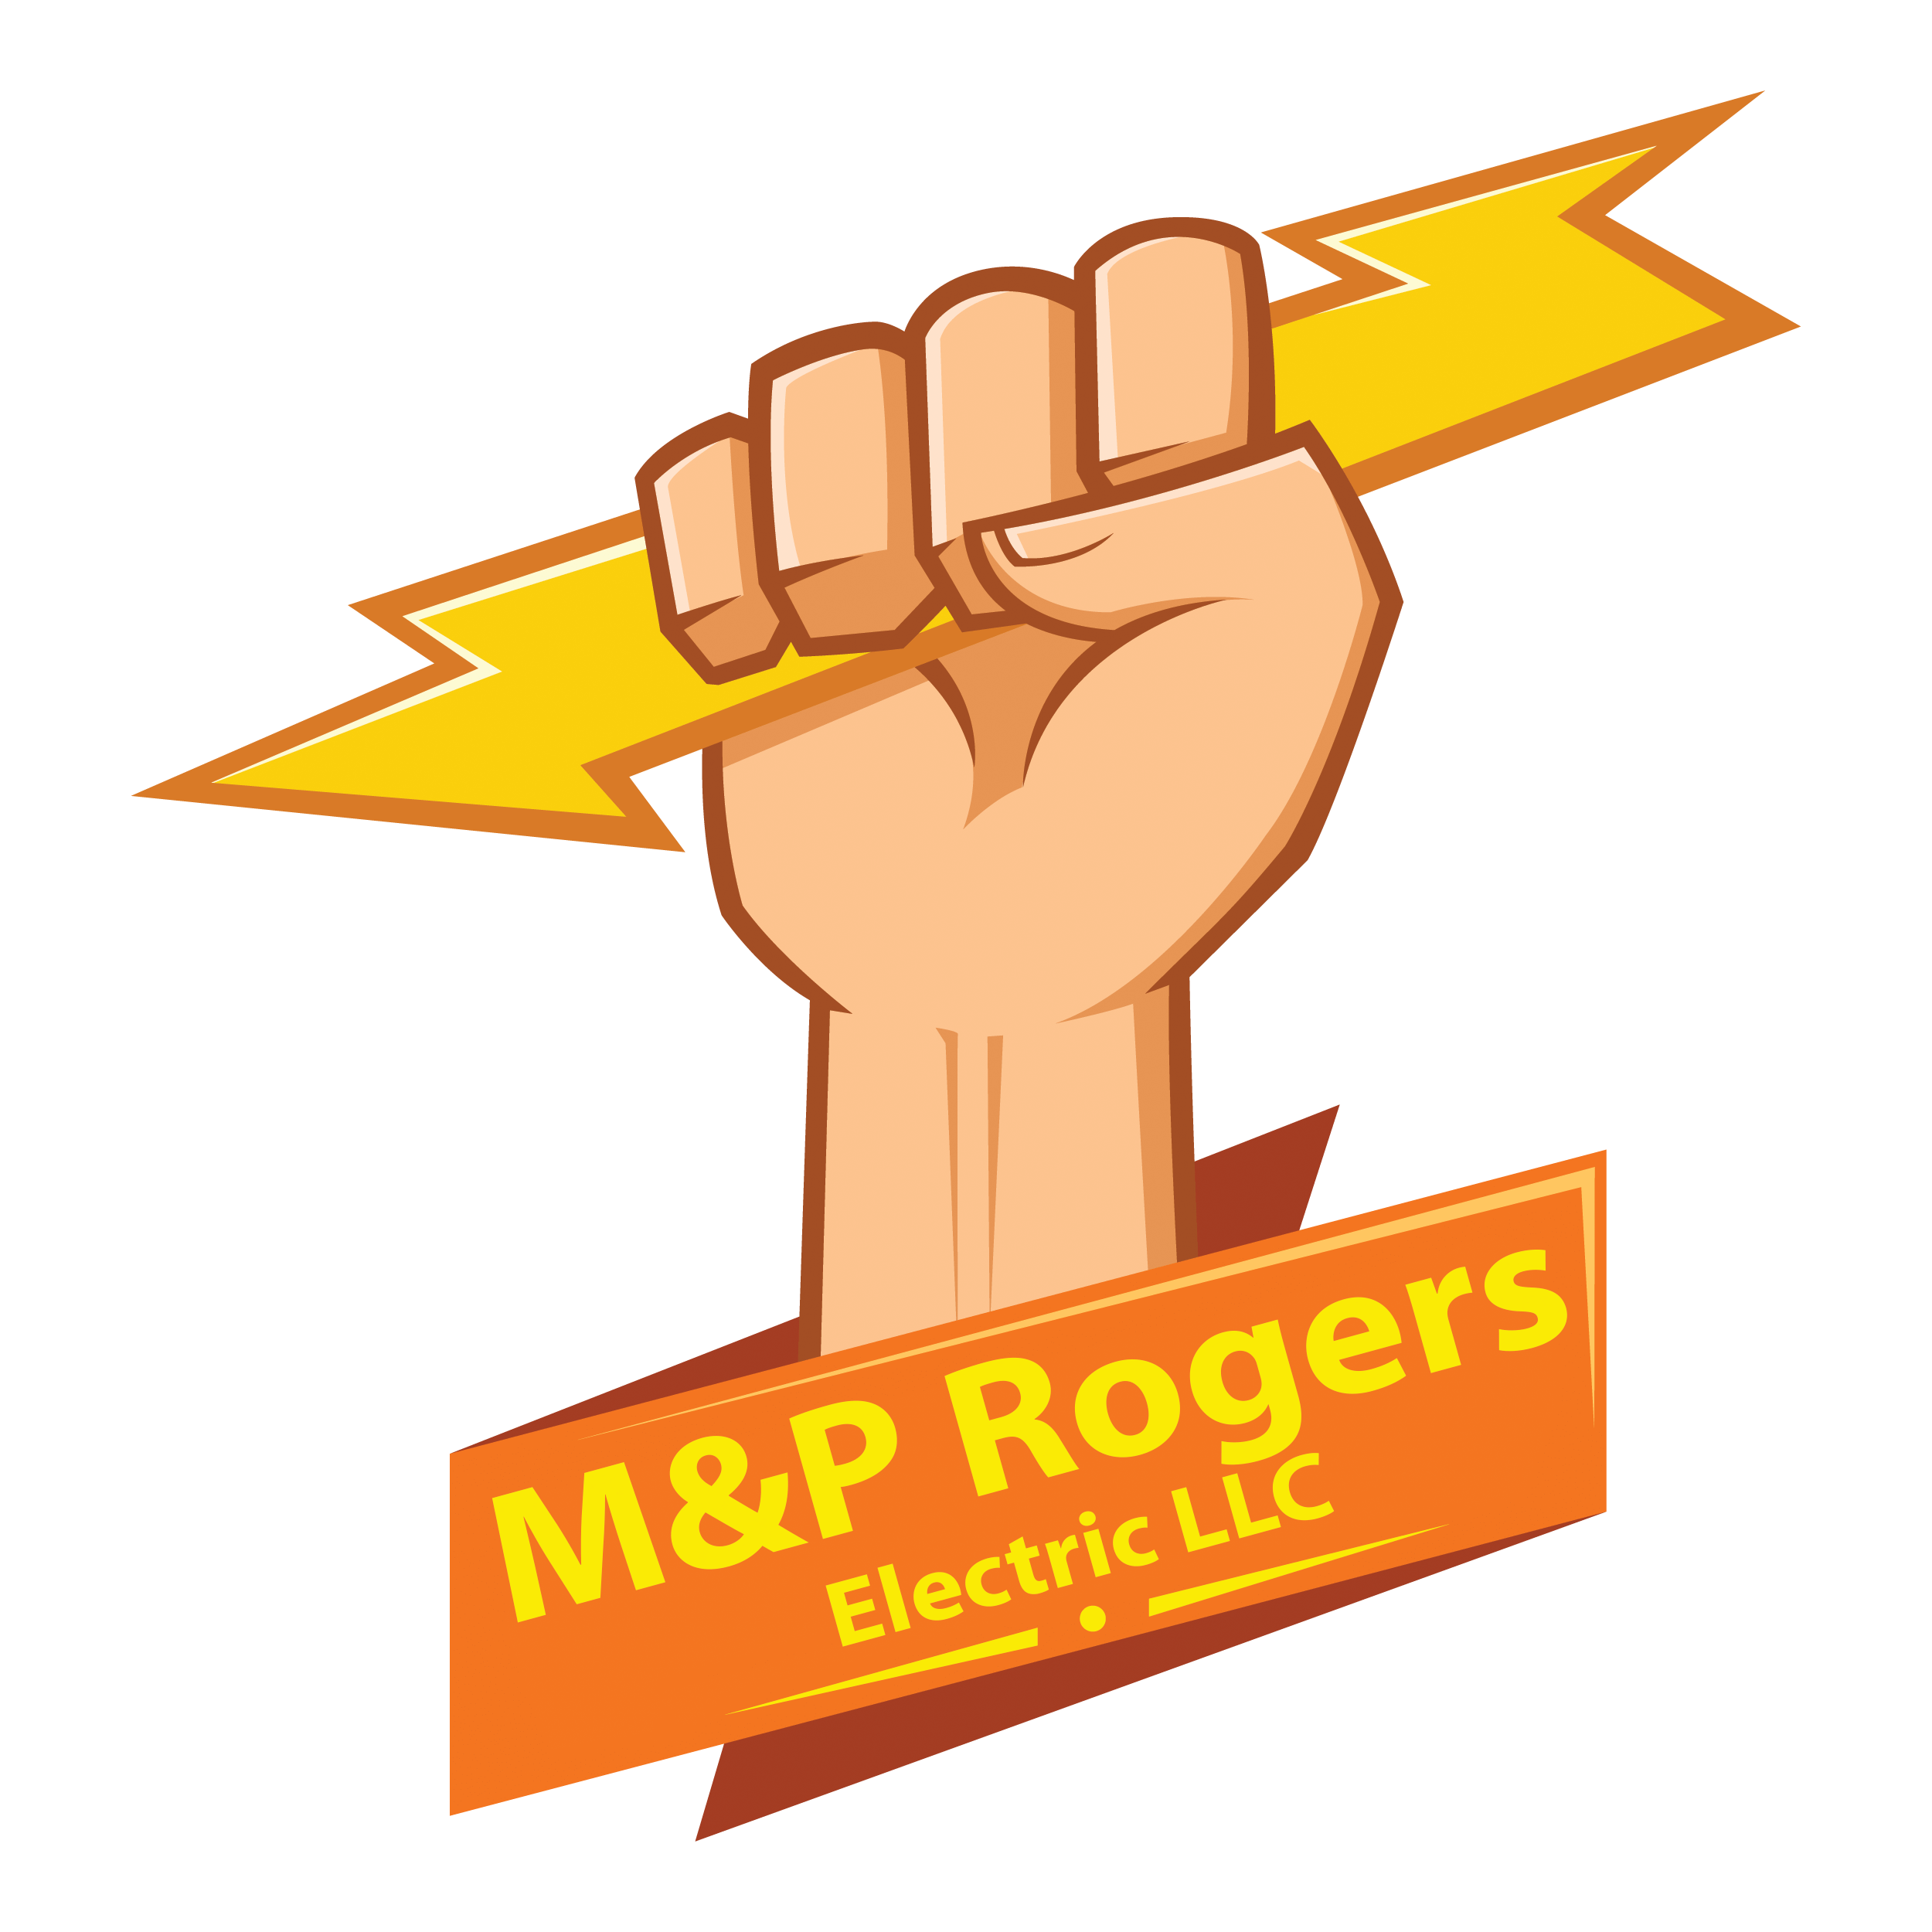 M p rogers electric. Contractor clipart electrical contractor